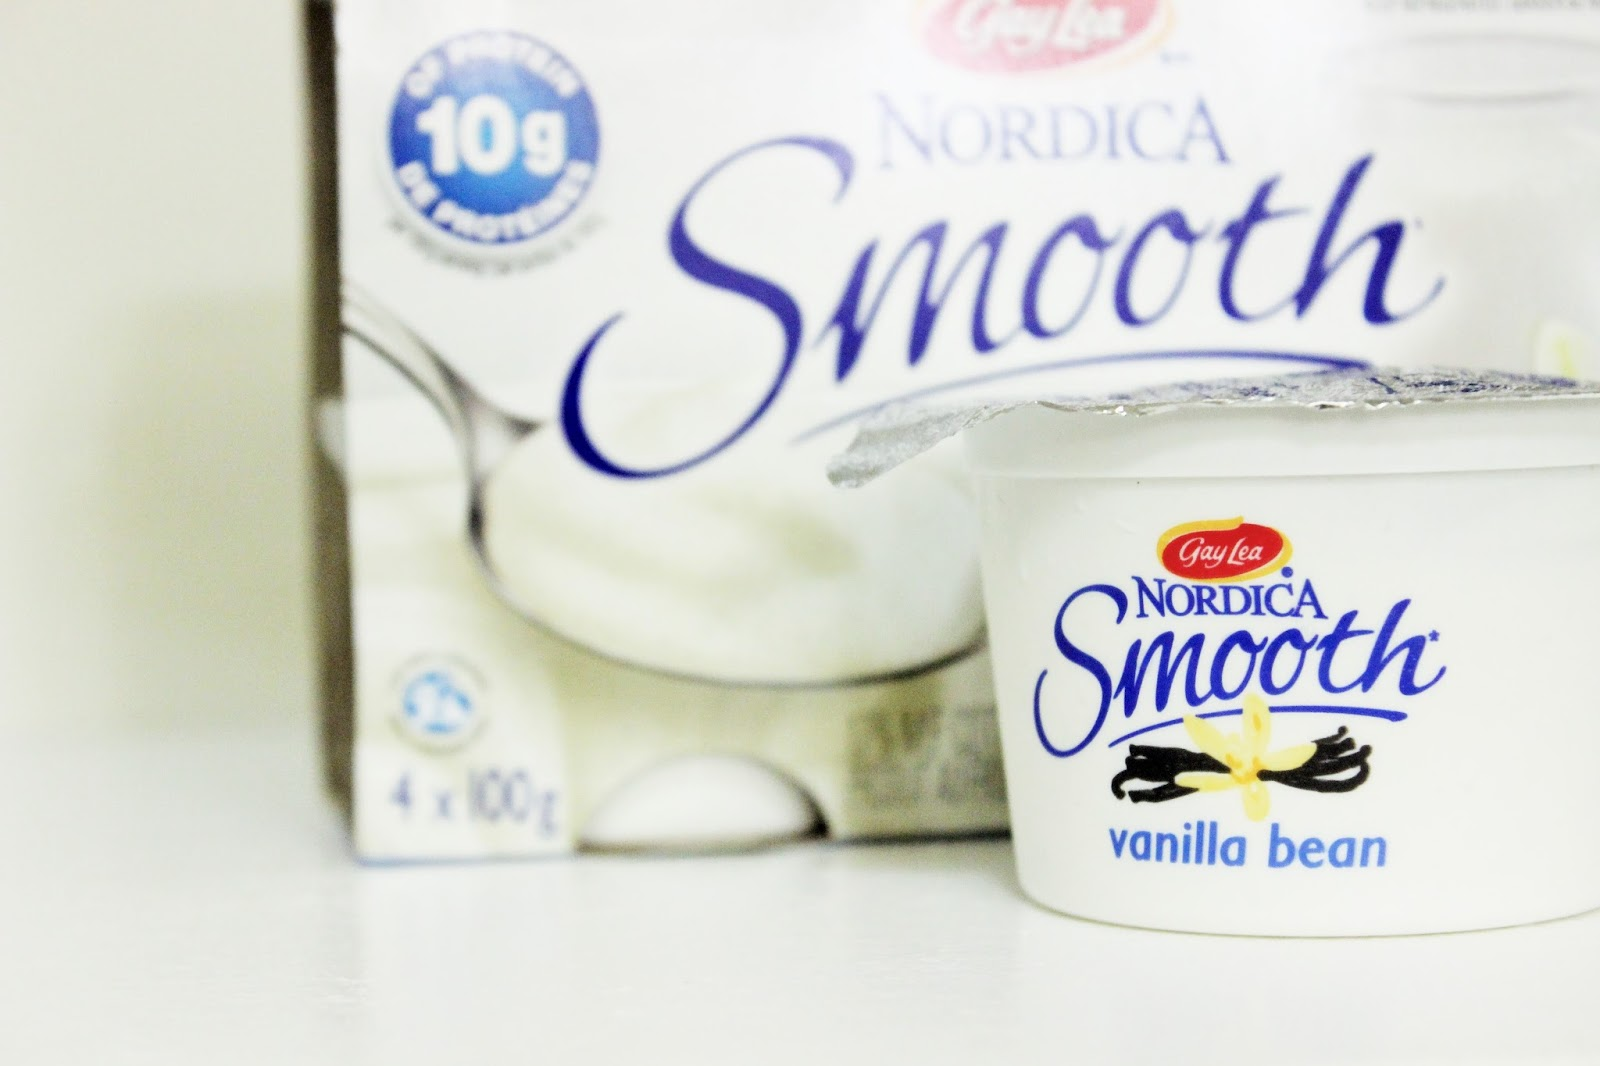 HEALTHY FALL TREAT: GAY LEA NORDICA SMOOTH COTTAGE CHEESE -  VANILLA BEAN